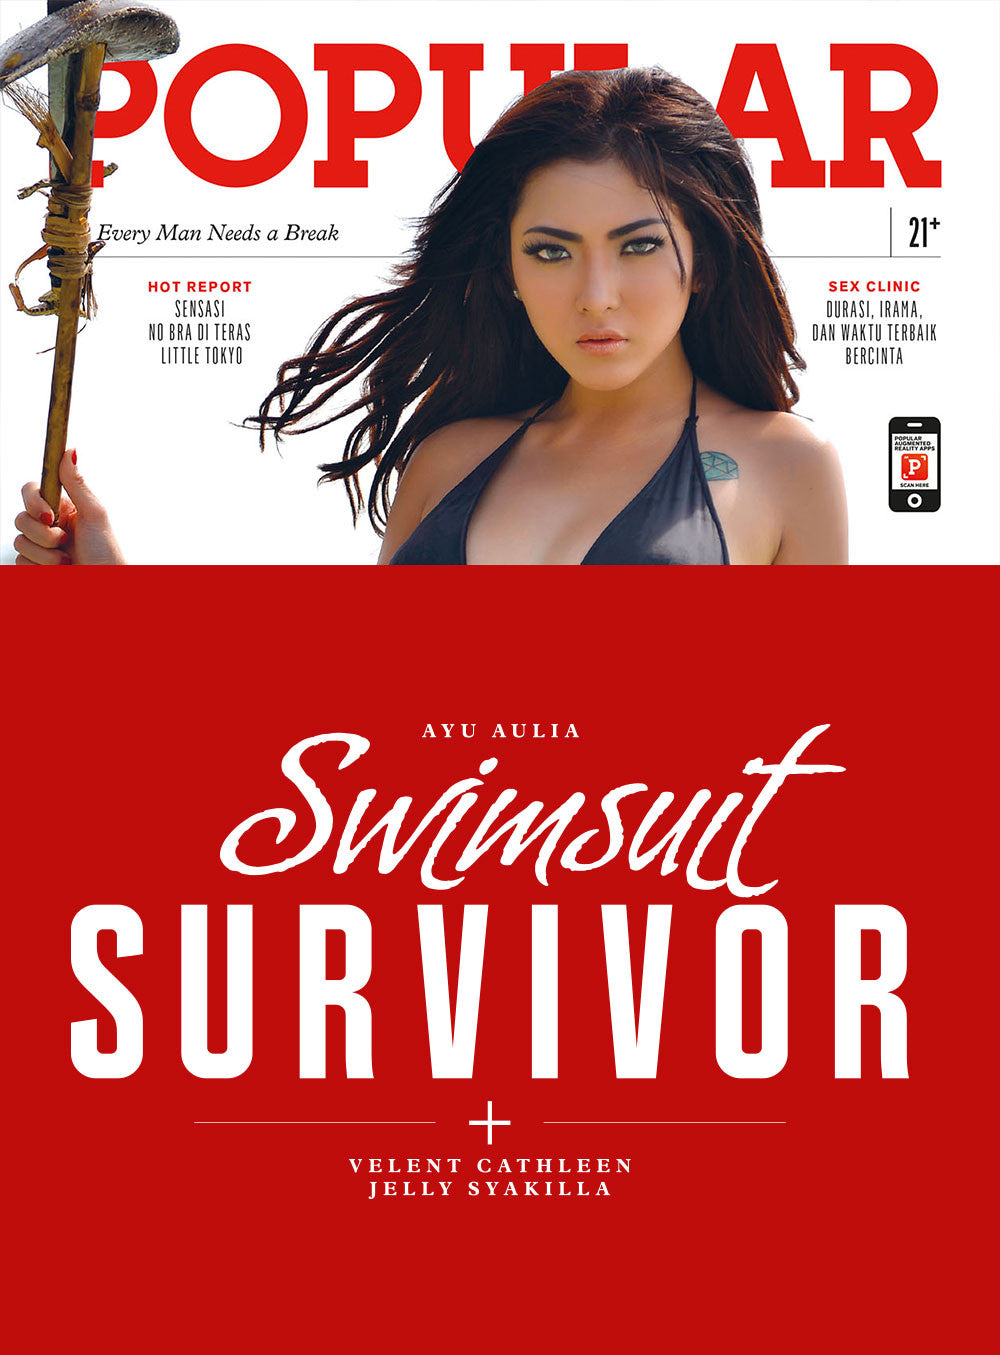 Majalah POPULAR Indonesia | Swimsuit Survivor | August 2015 Edition